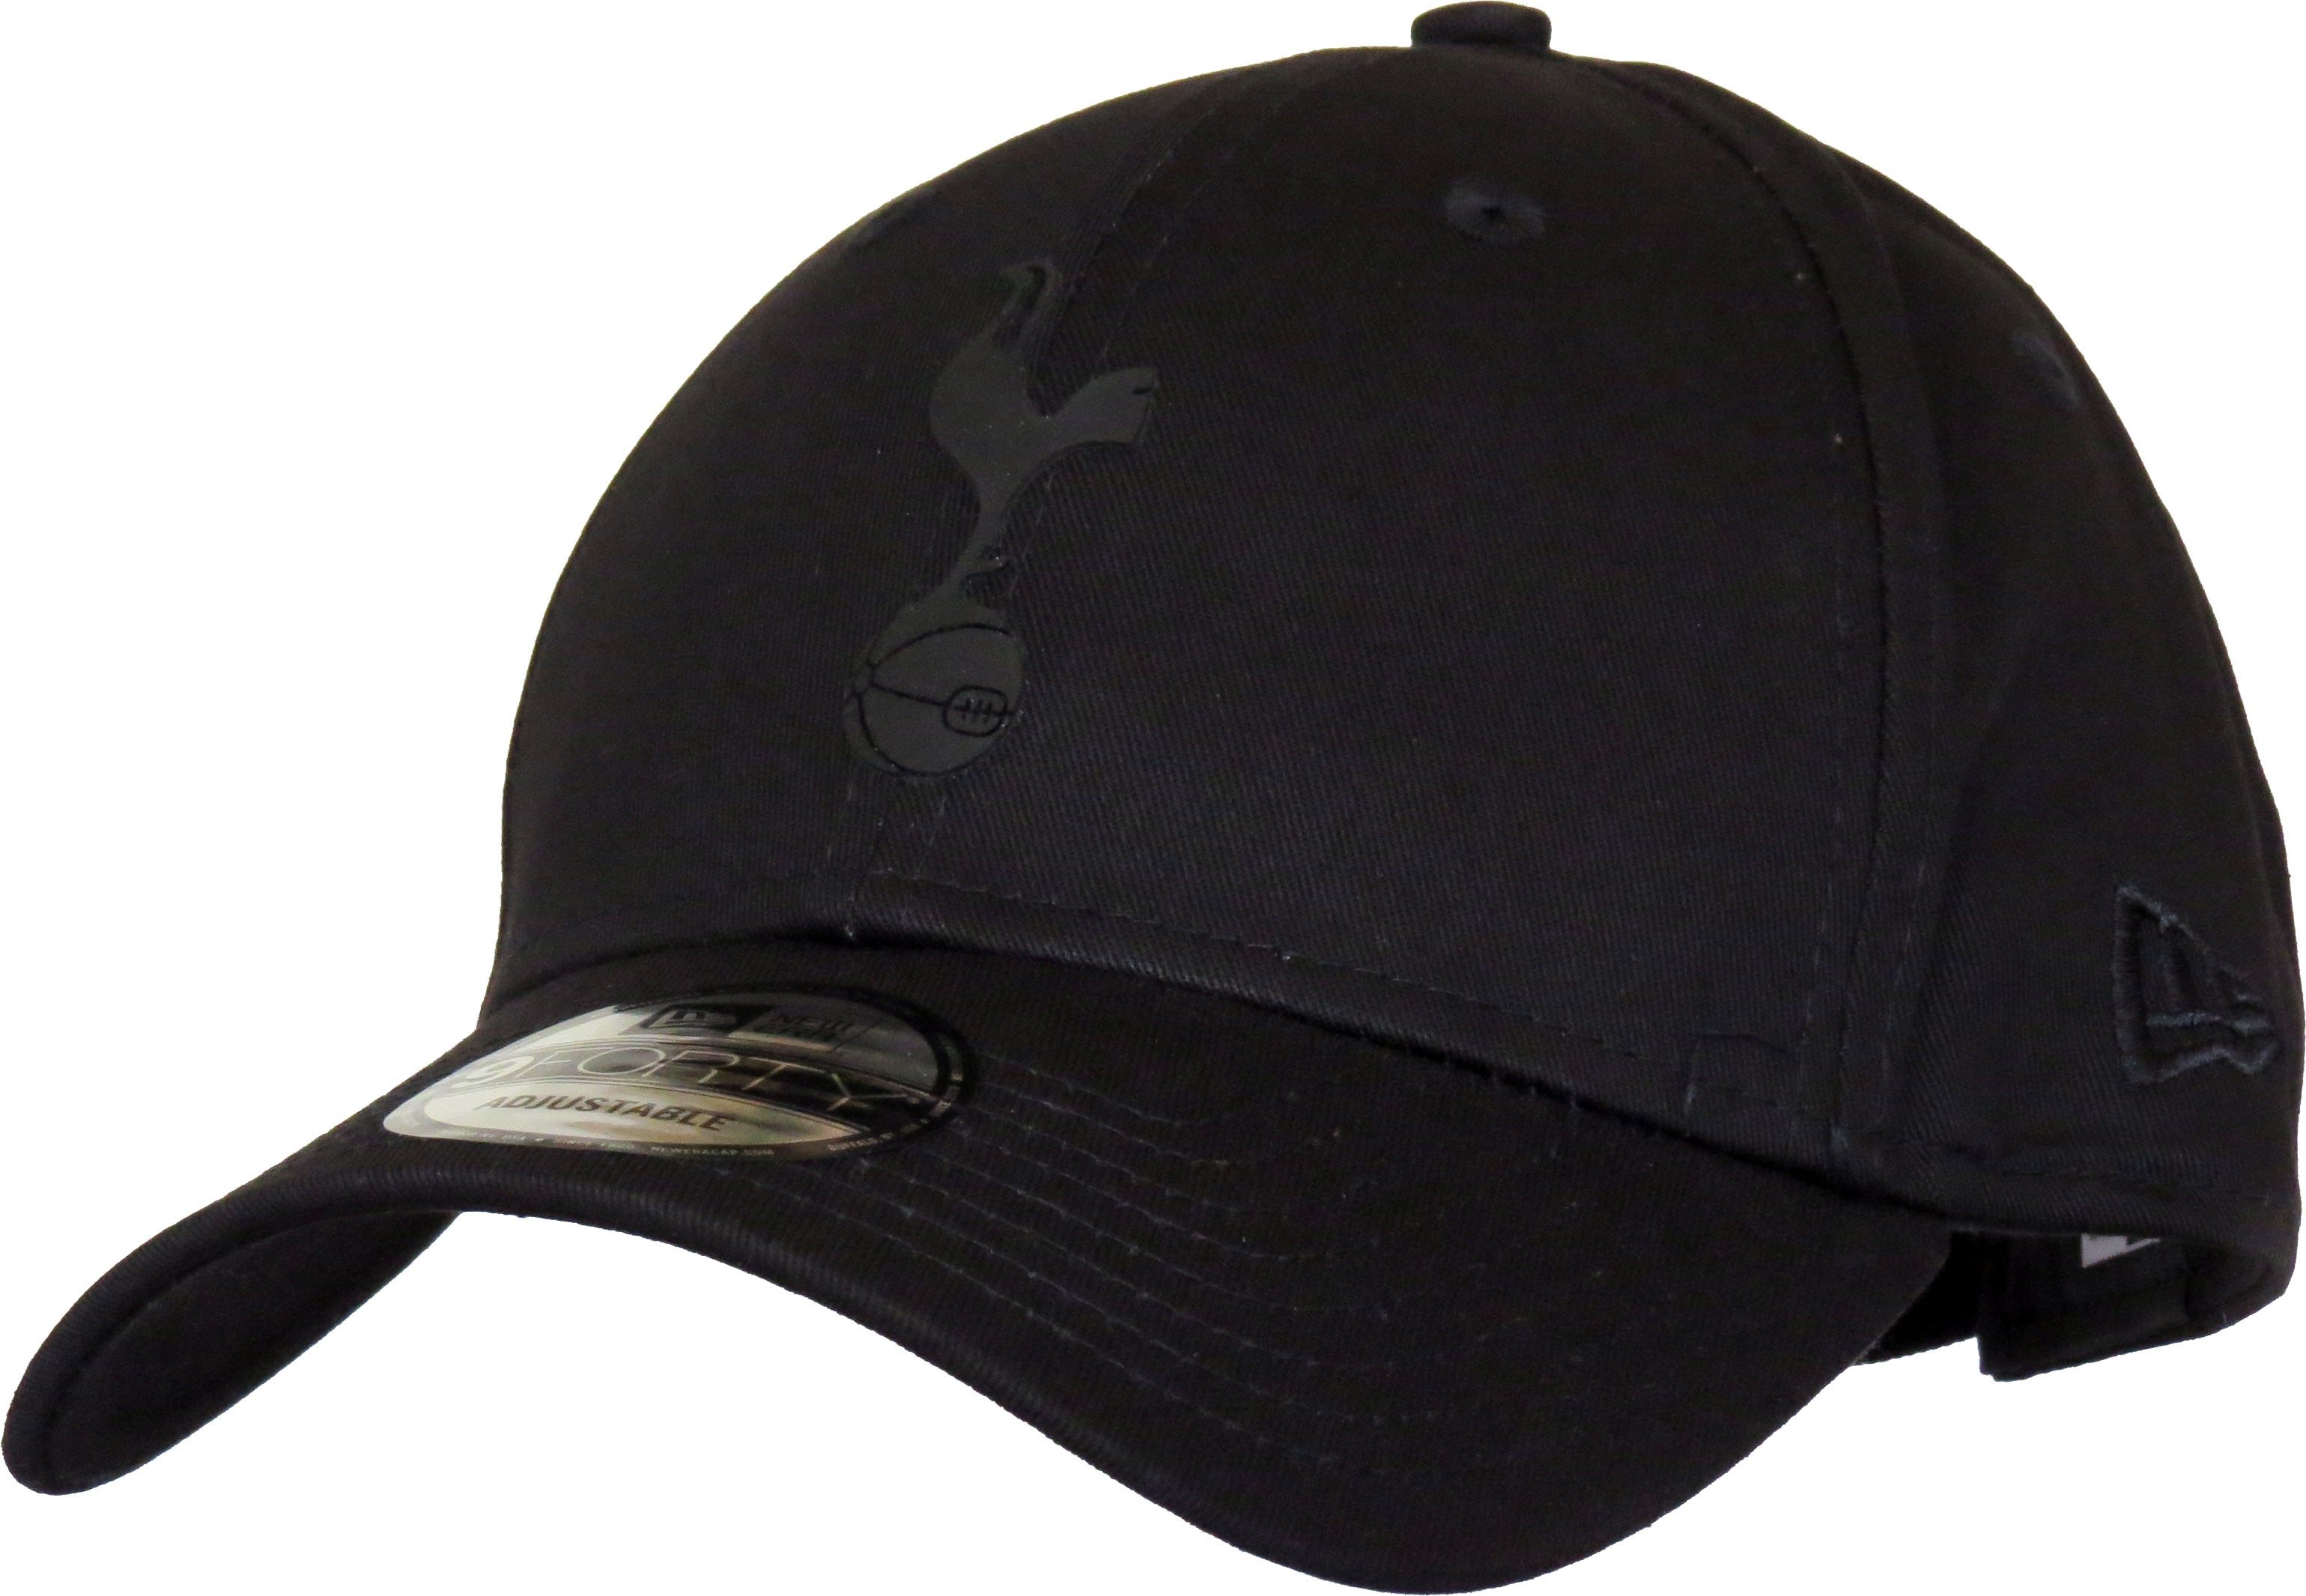 Tottenham Hotspur New Era 940 All Black Cap Lovemycap